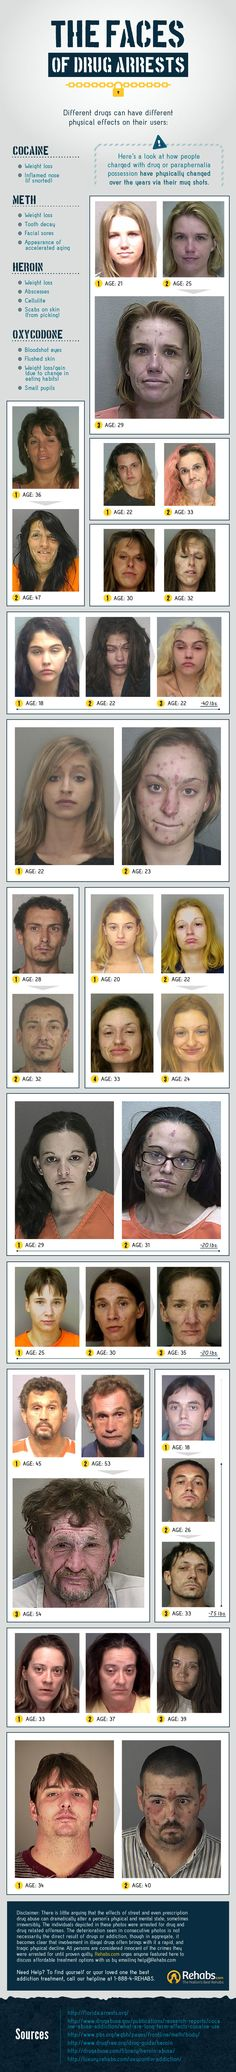 Before And After Drugs Photos That'll Leave You Speechless - Faces Of Meth